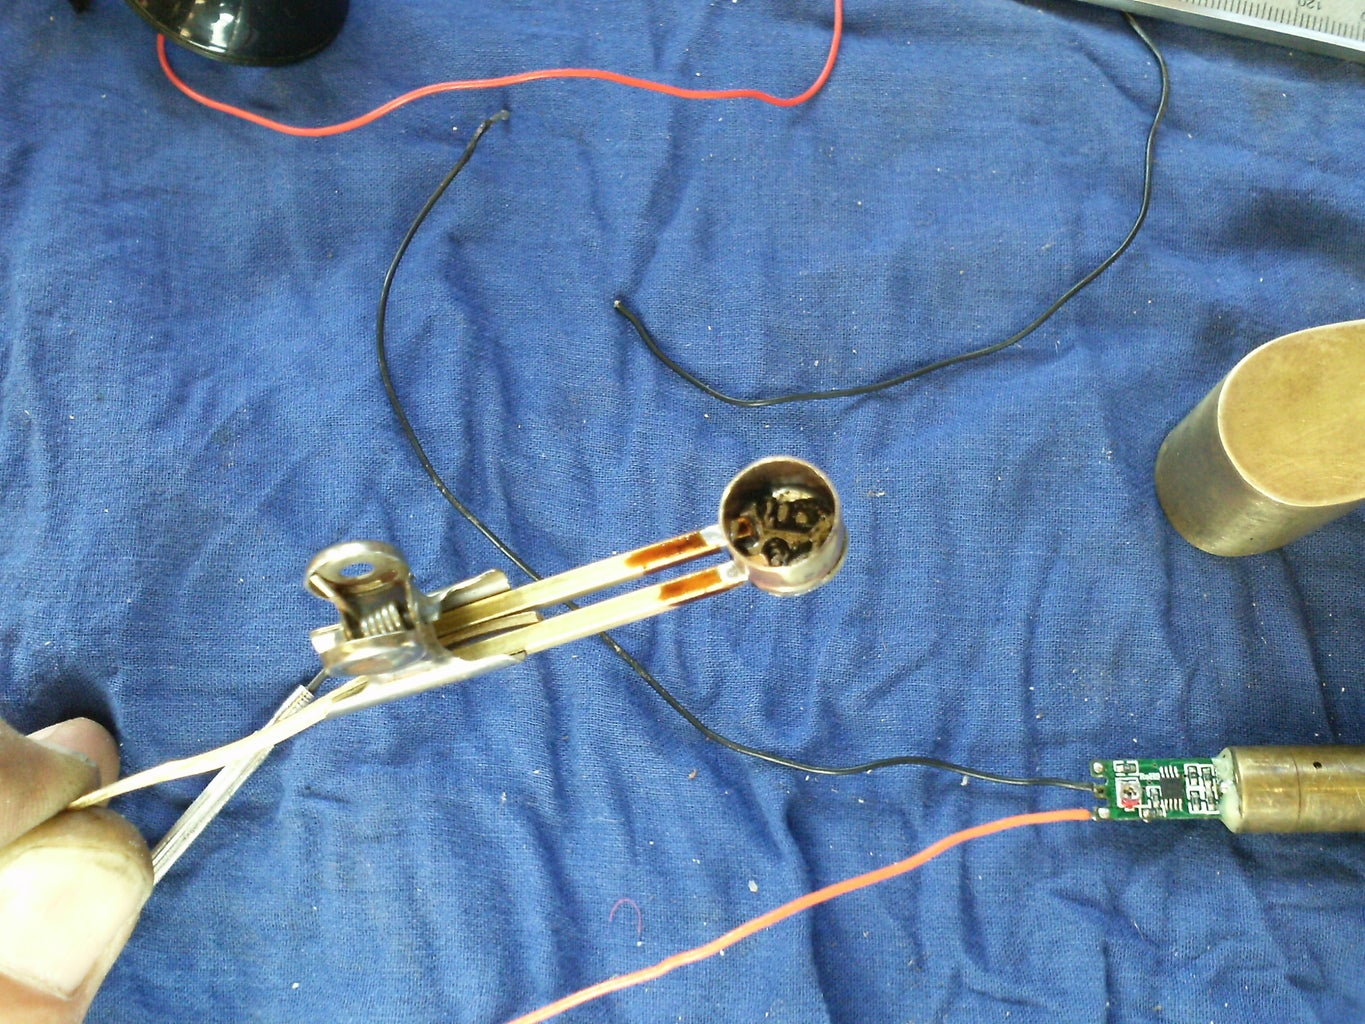 Covering the Laser Driver and Its Wires